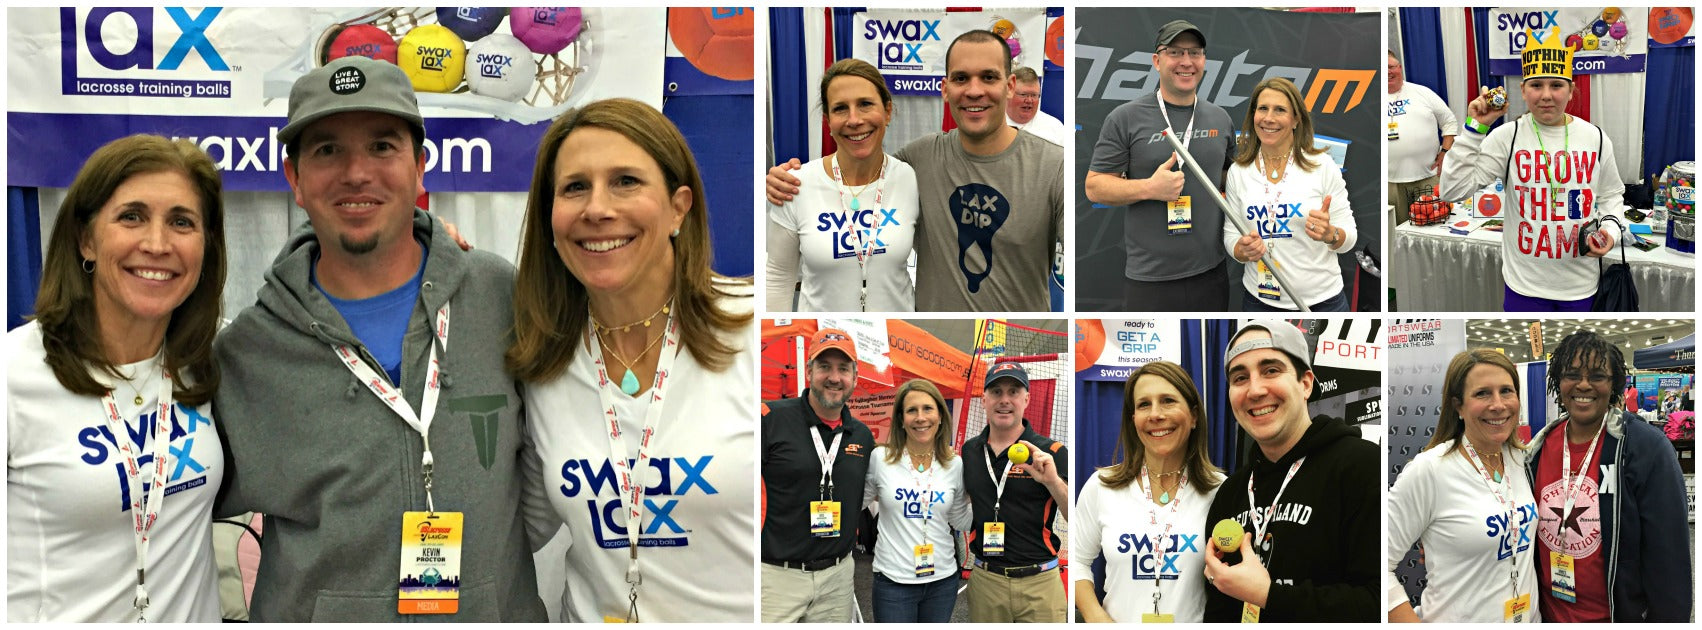 Swax Lax Enjoying Meeting Fans and Coaches at Laxcon 2017